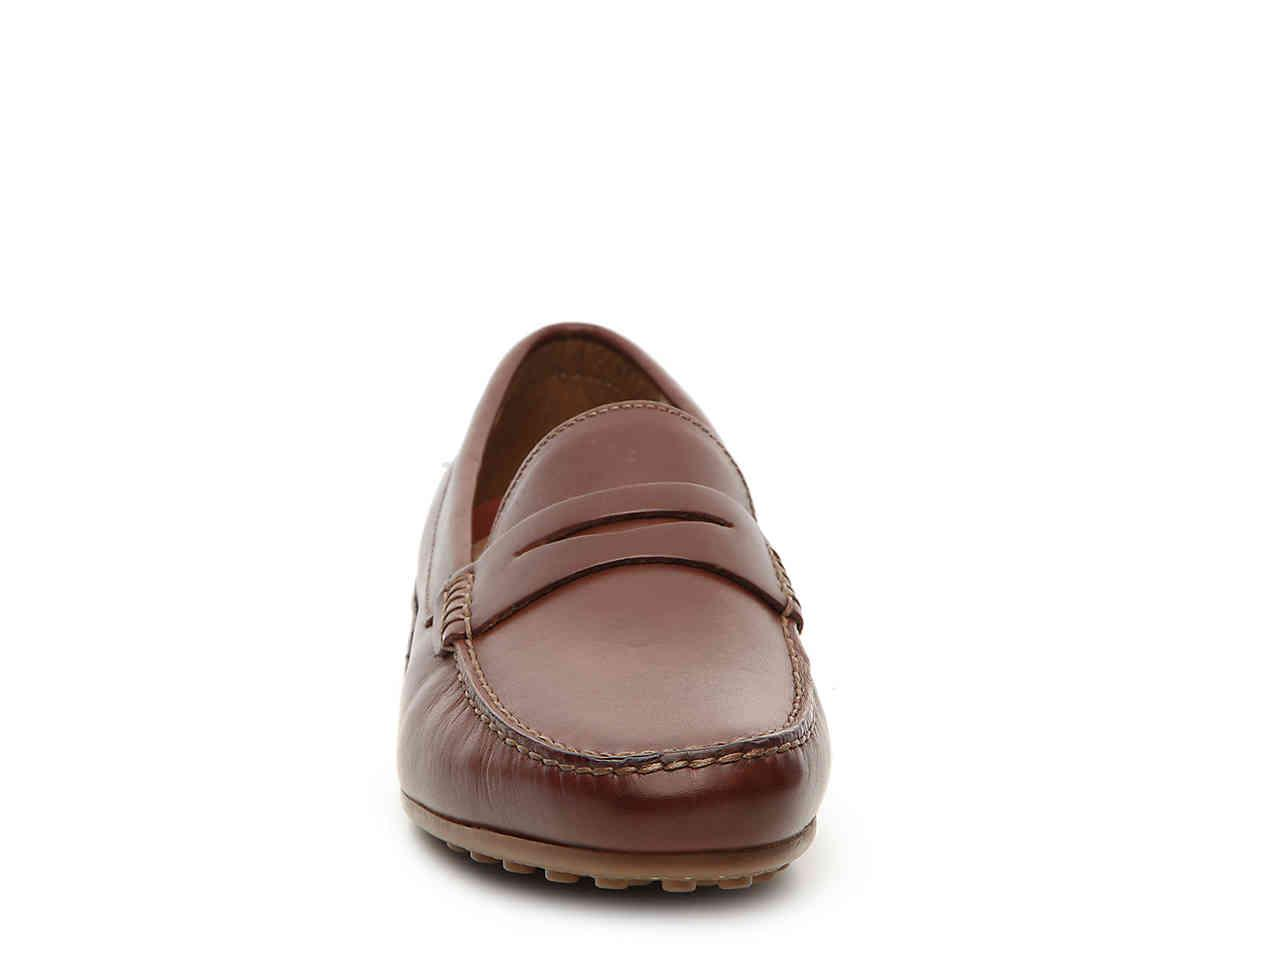 0f4623162b1 Florsheim - Brown Oval Penny Loafer for Men - Lyst. View fullscreen